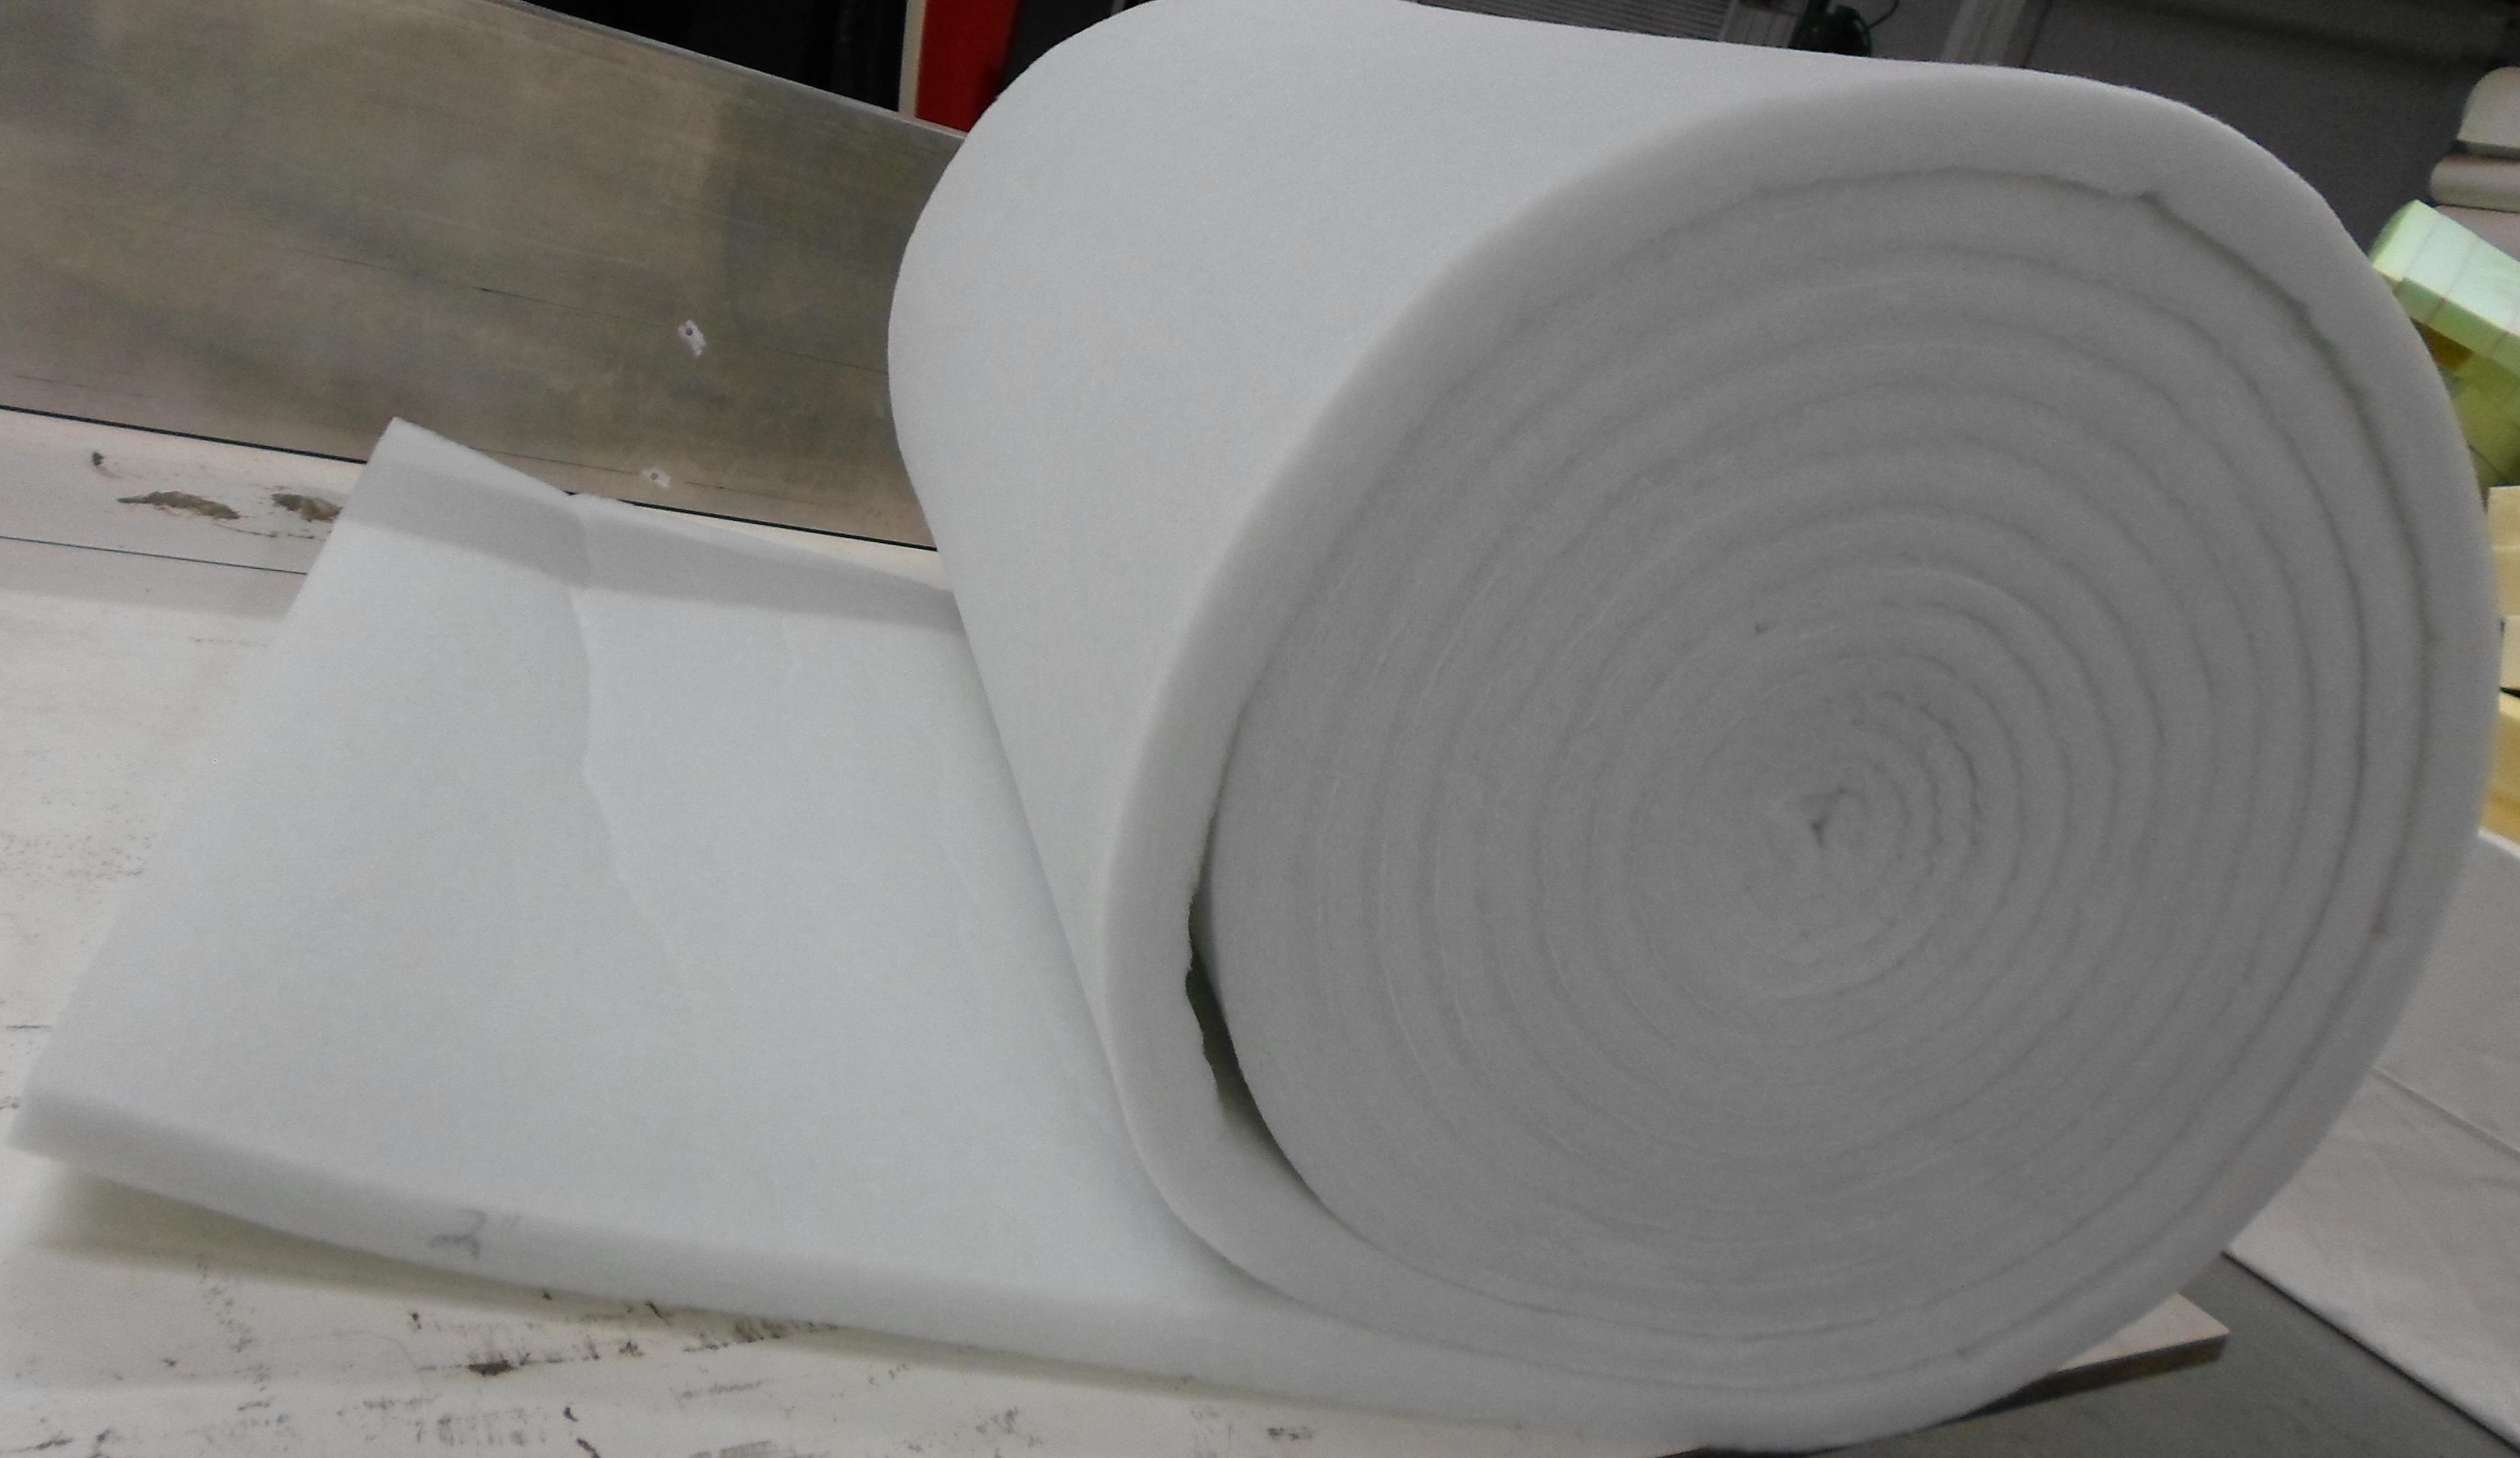 High Density Foam Pad | High Density Upholstery Foam | High Density Foam for Cushions